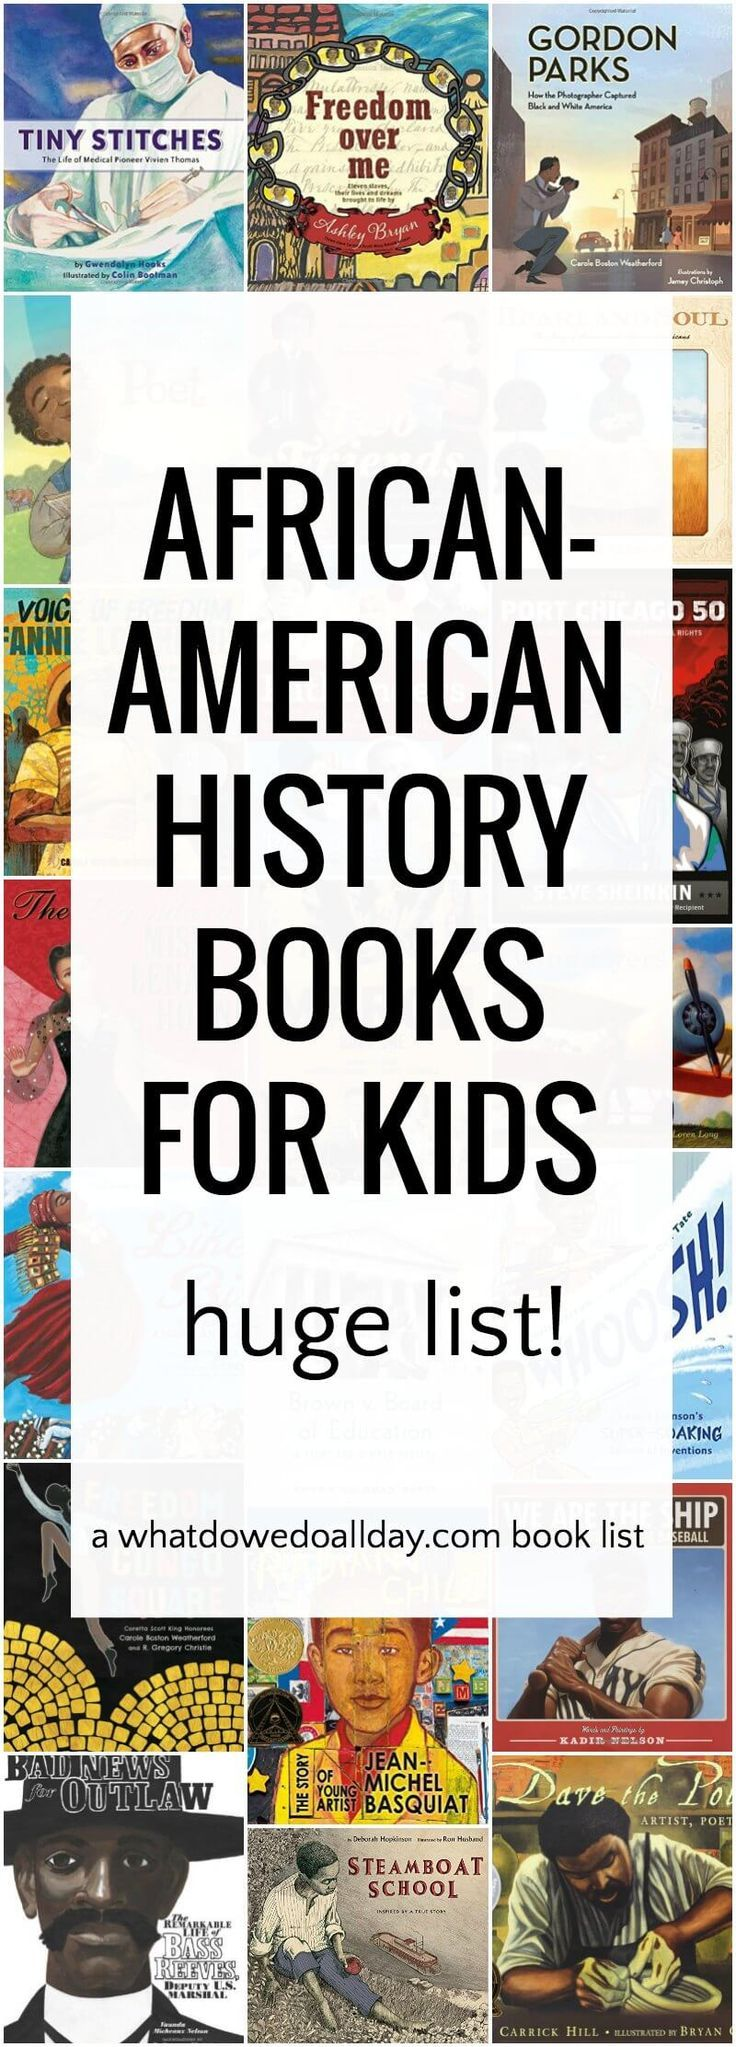 Incorporate diversity into your lessons with these African-American History books for kids! #JoynerLibrary #TRC #BlackHistory